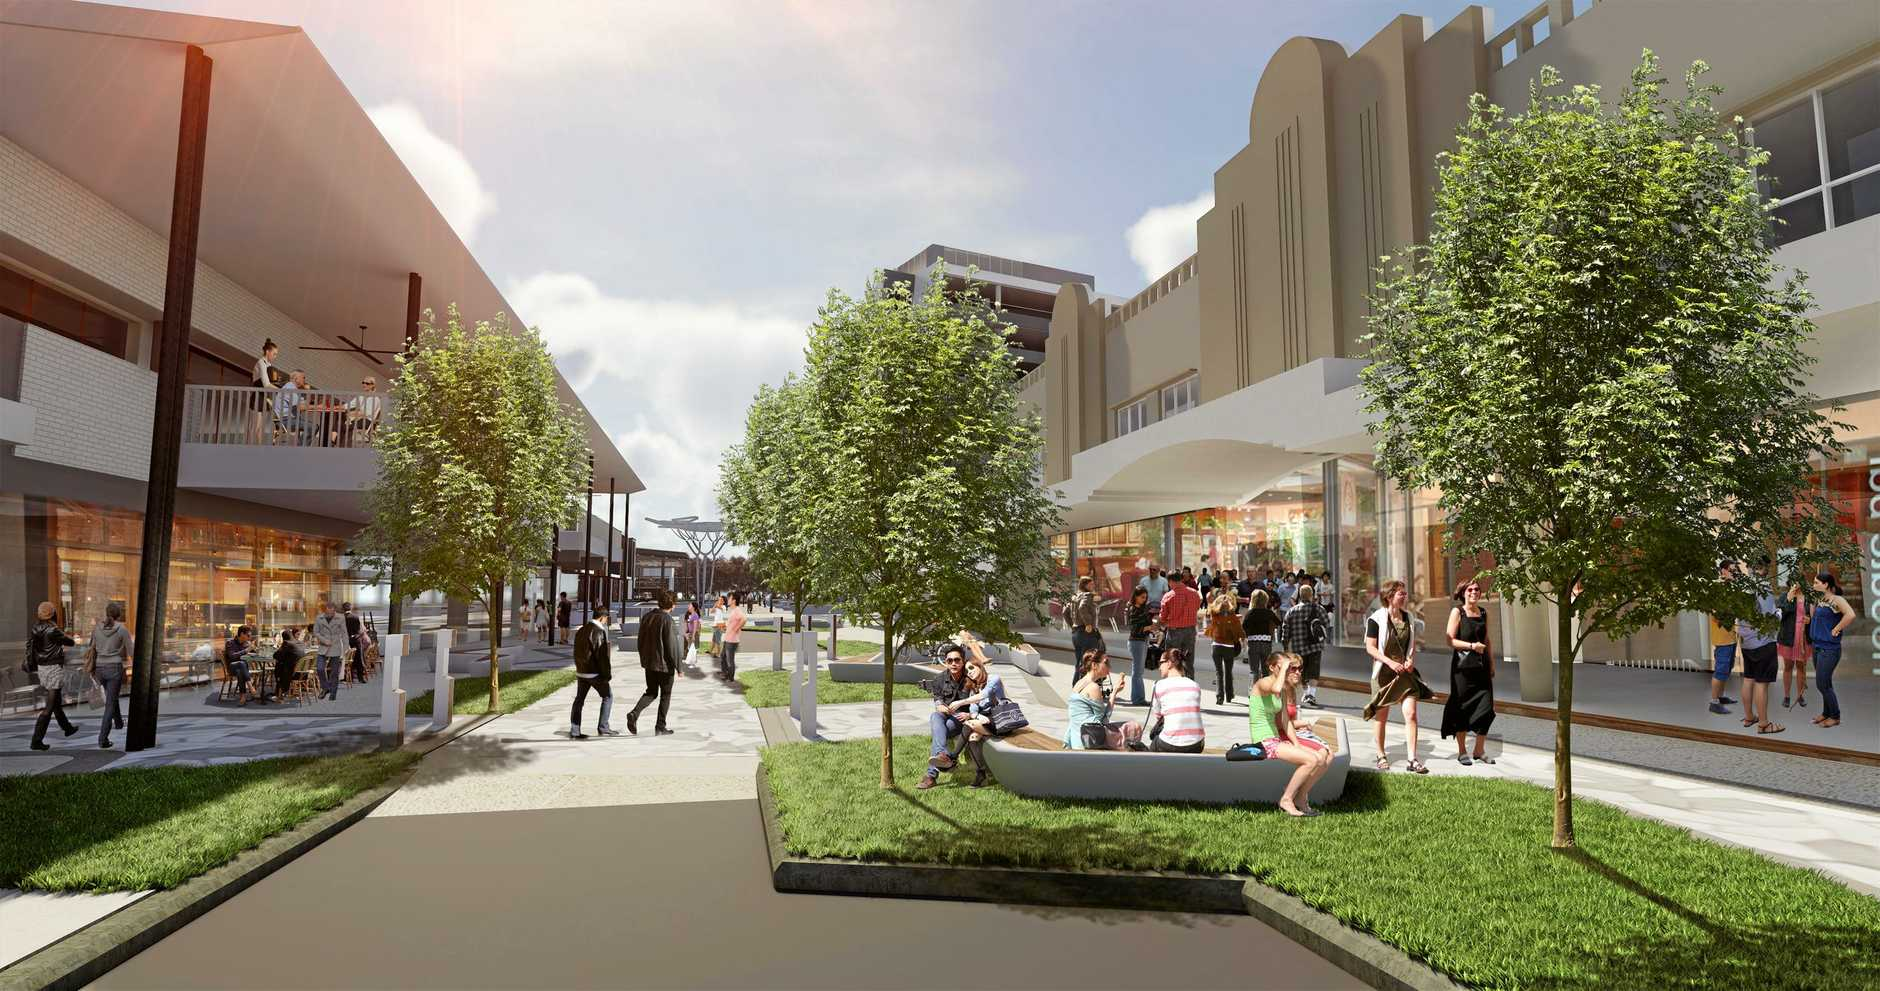 Nicholas St in Ipswich is set to be transformed as part of the CBD upgrades.